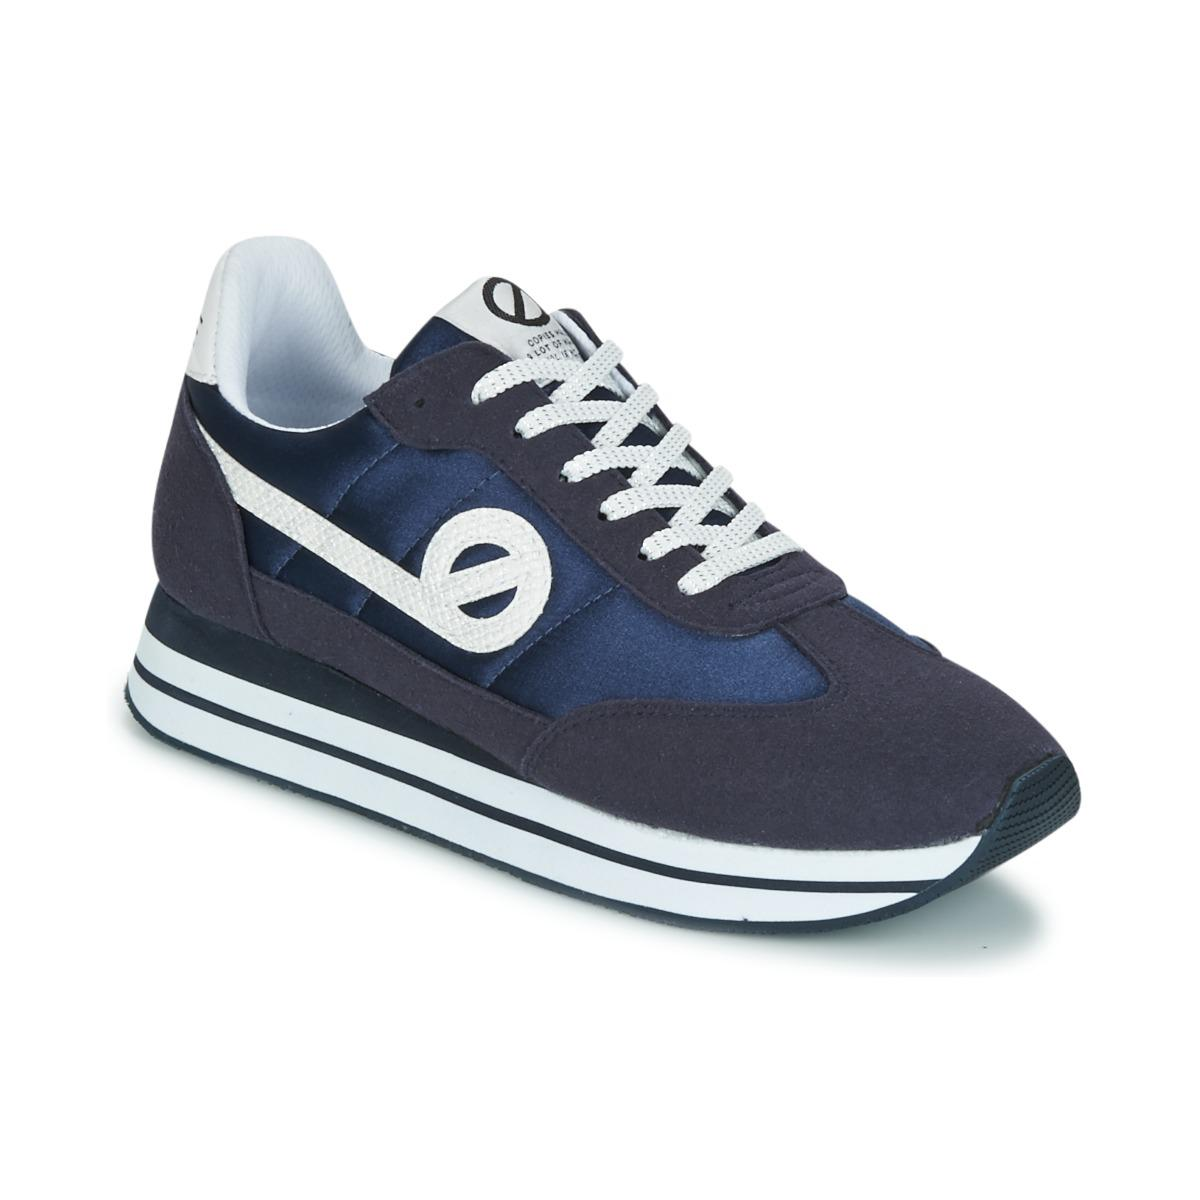 No Name EDEN JOGGER women's Shoes (Trainers) in Buy Cheap Sale With Credit Card Cheap Online Clearance Order Free Shipping Sale Online Huge Surprise HL4sDx07b